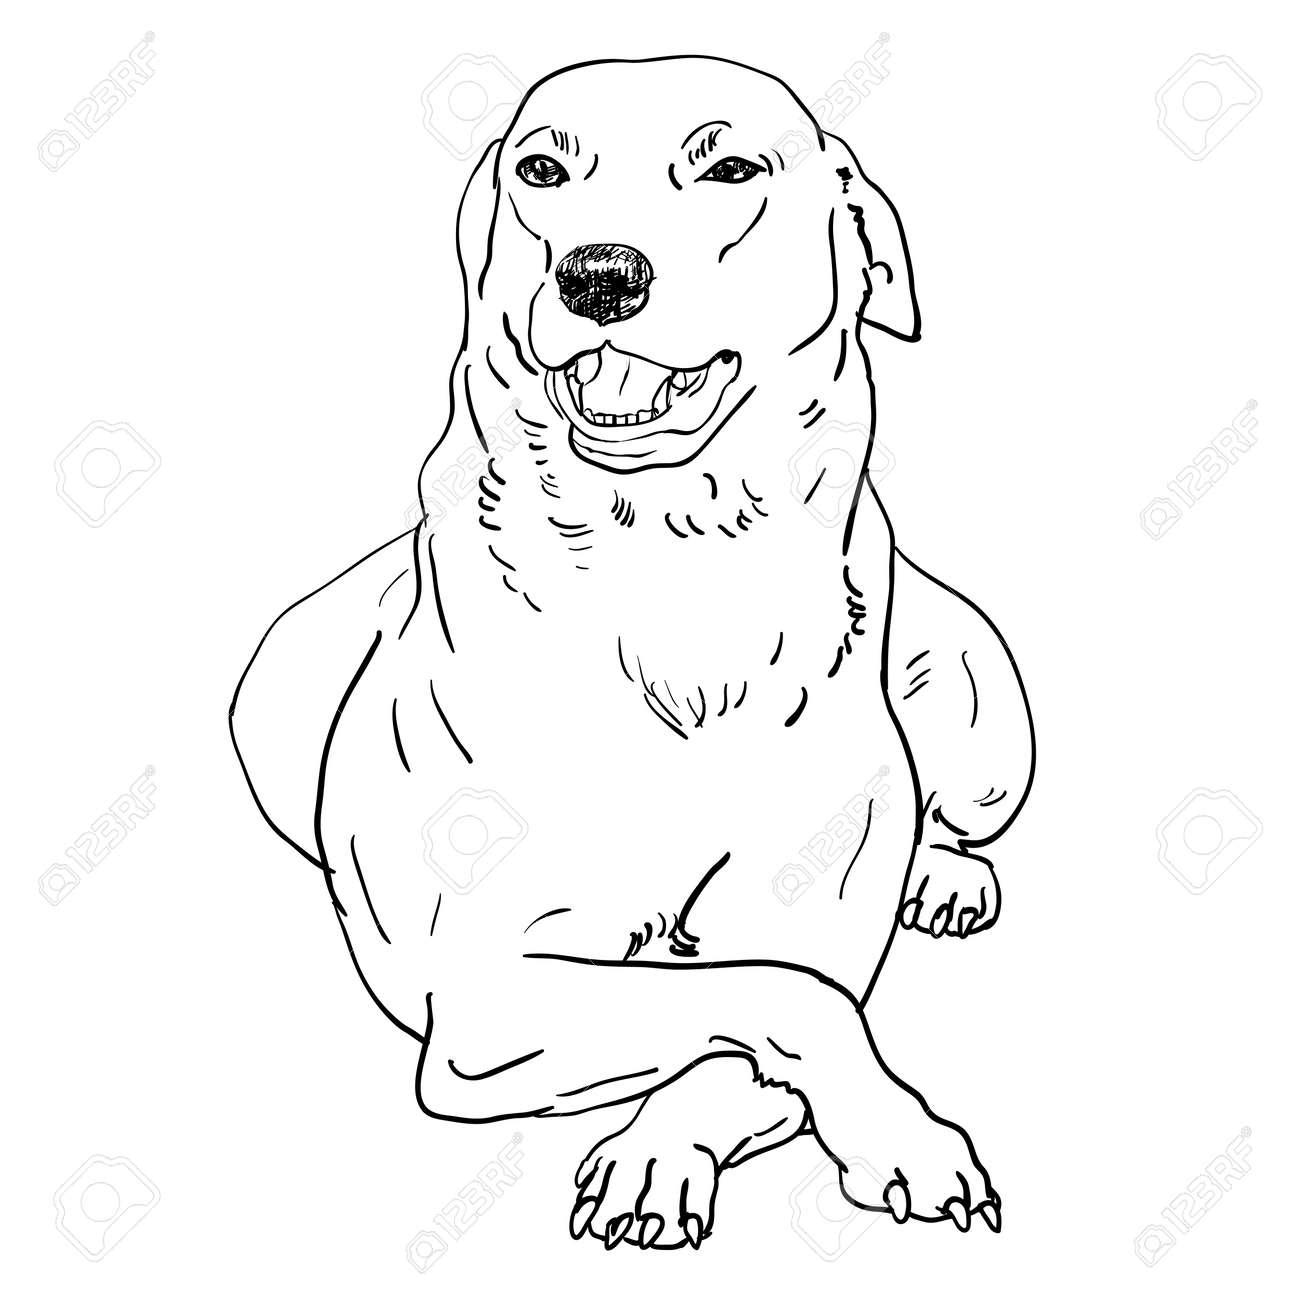 How To Draw A Dog Laying Down Step By Step Jpg 1300x1300 Dogs Puppies Laying  Down